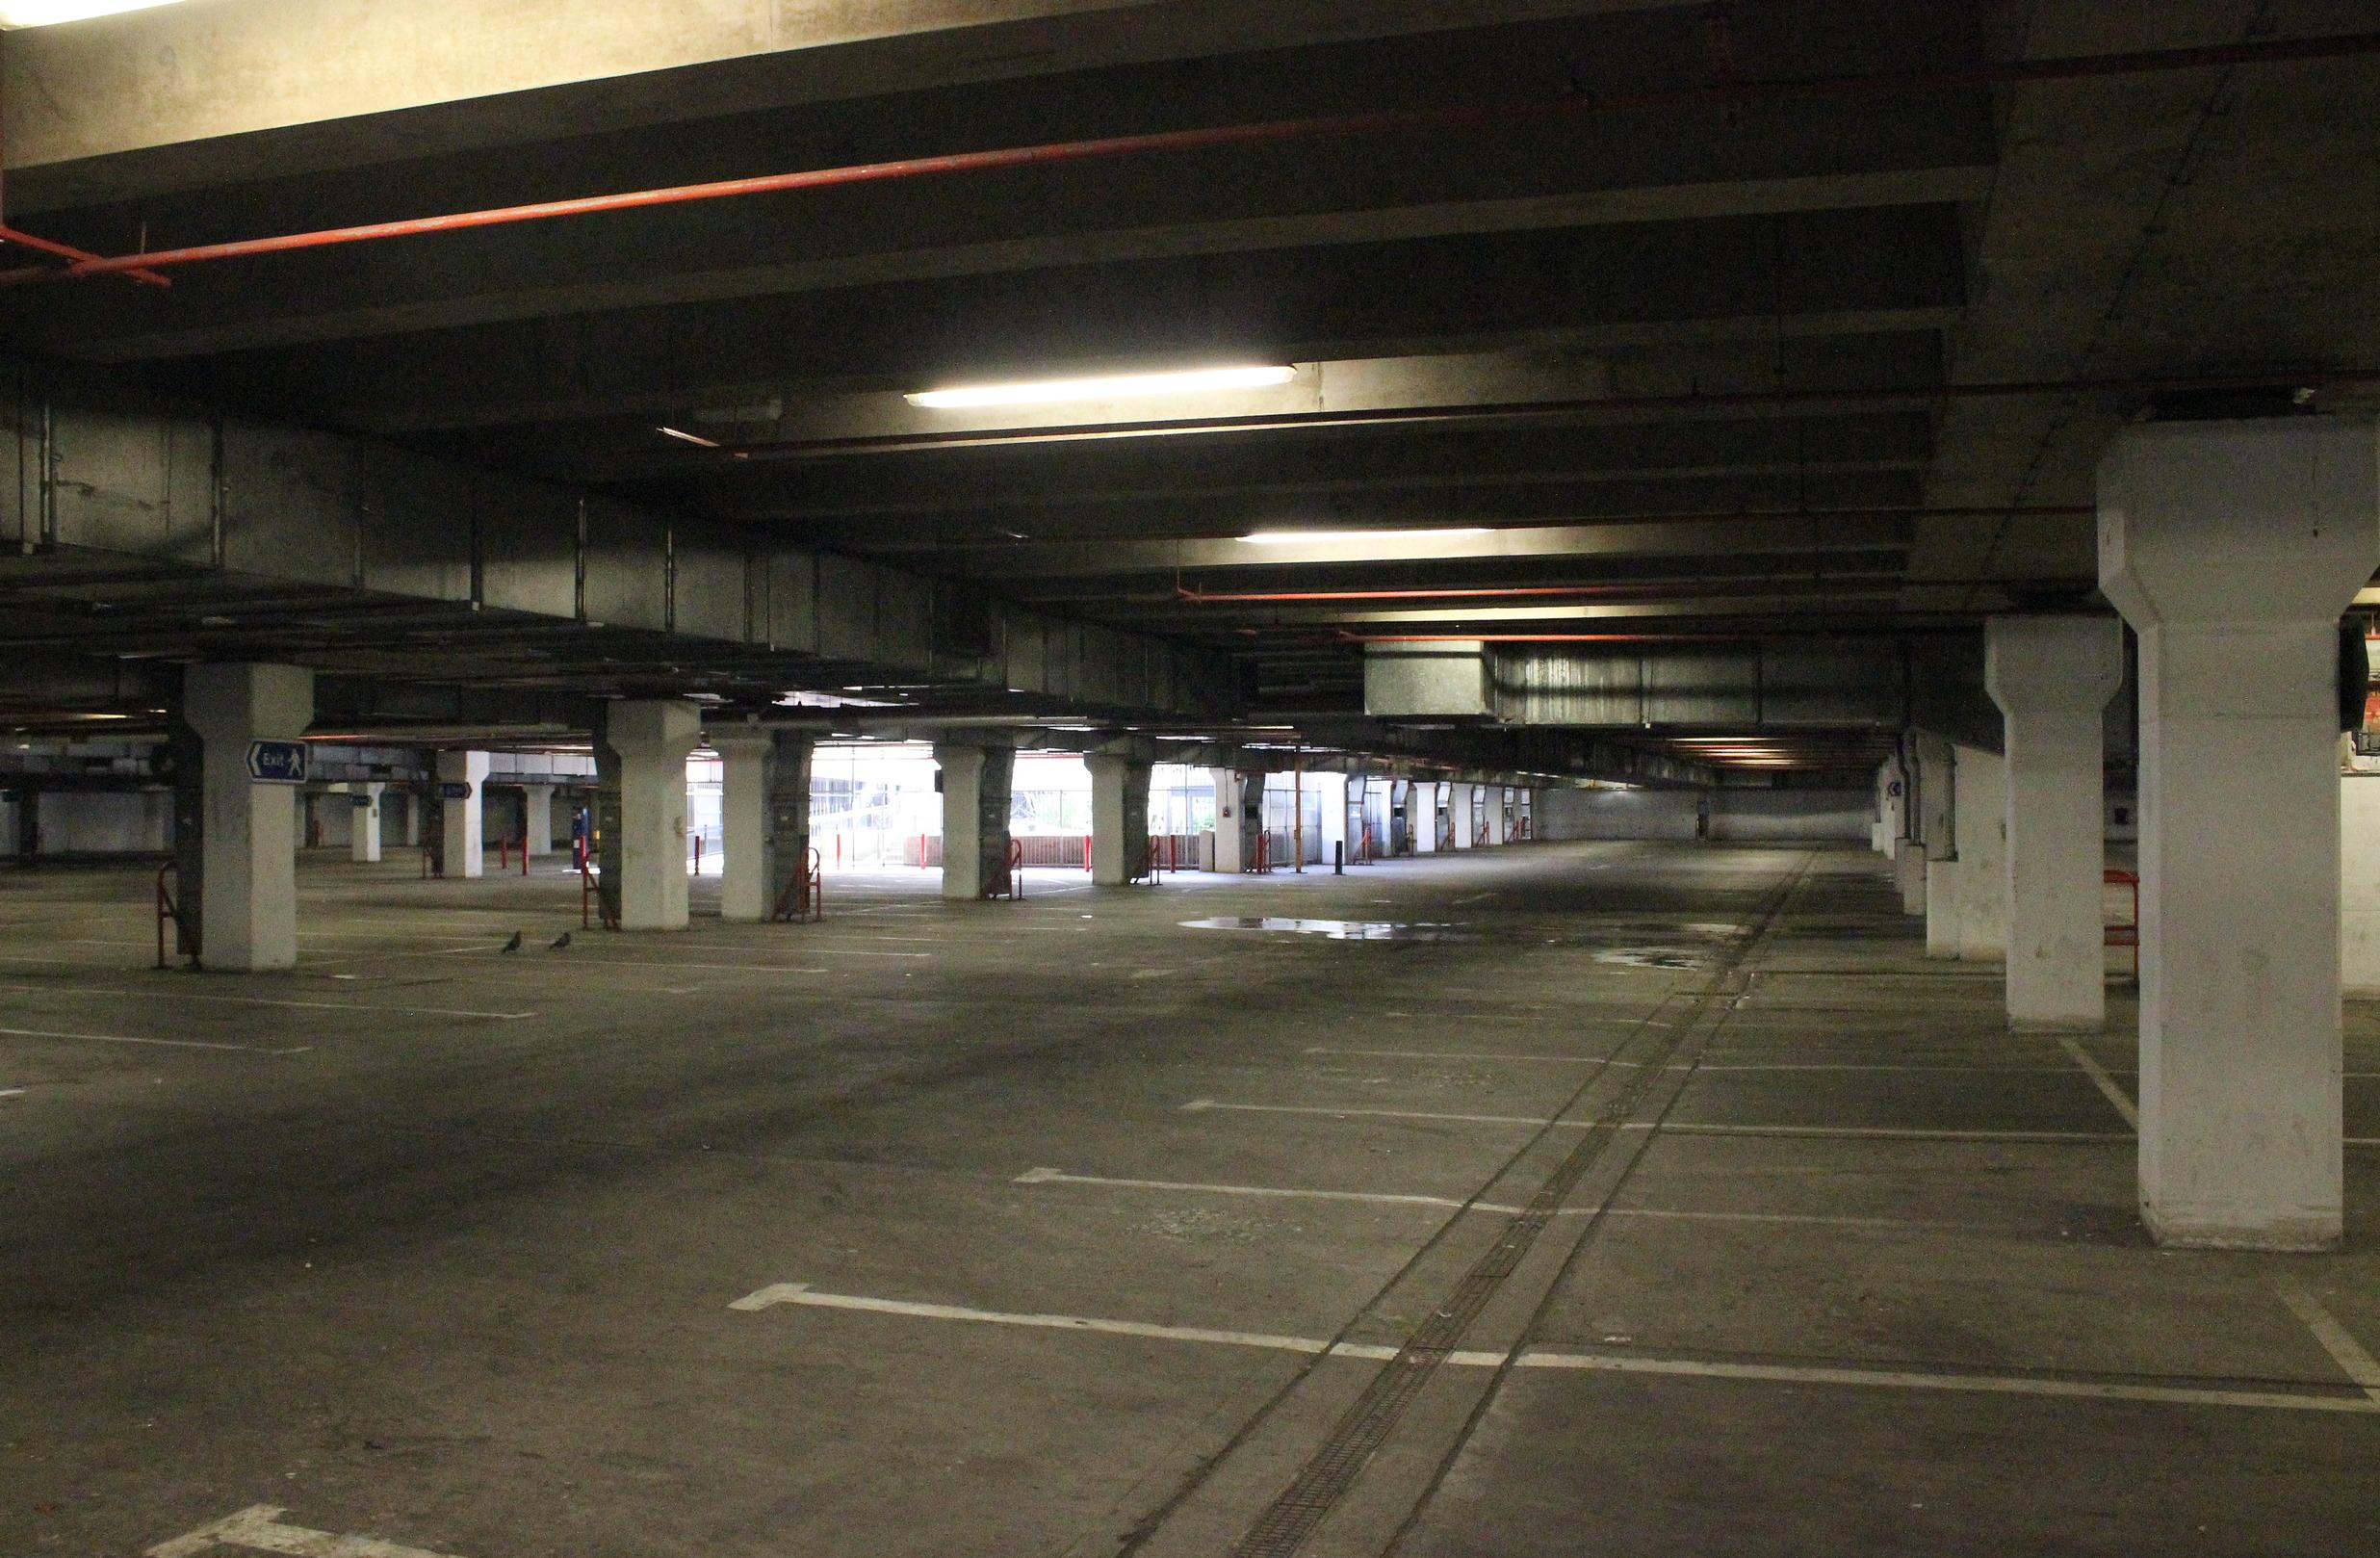 Inside the Rhyl Undergound Car Park (Jeff Buck/Geograph)